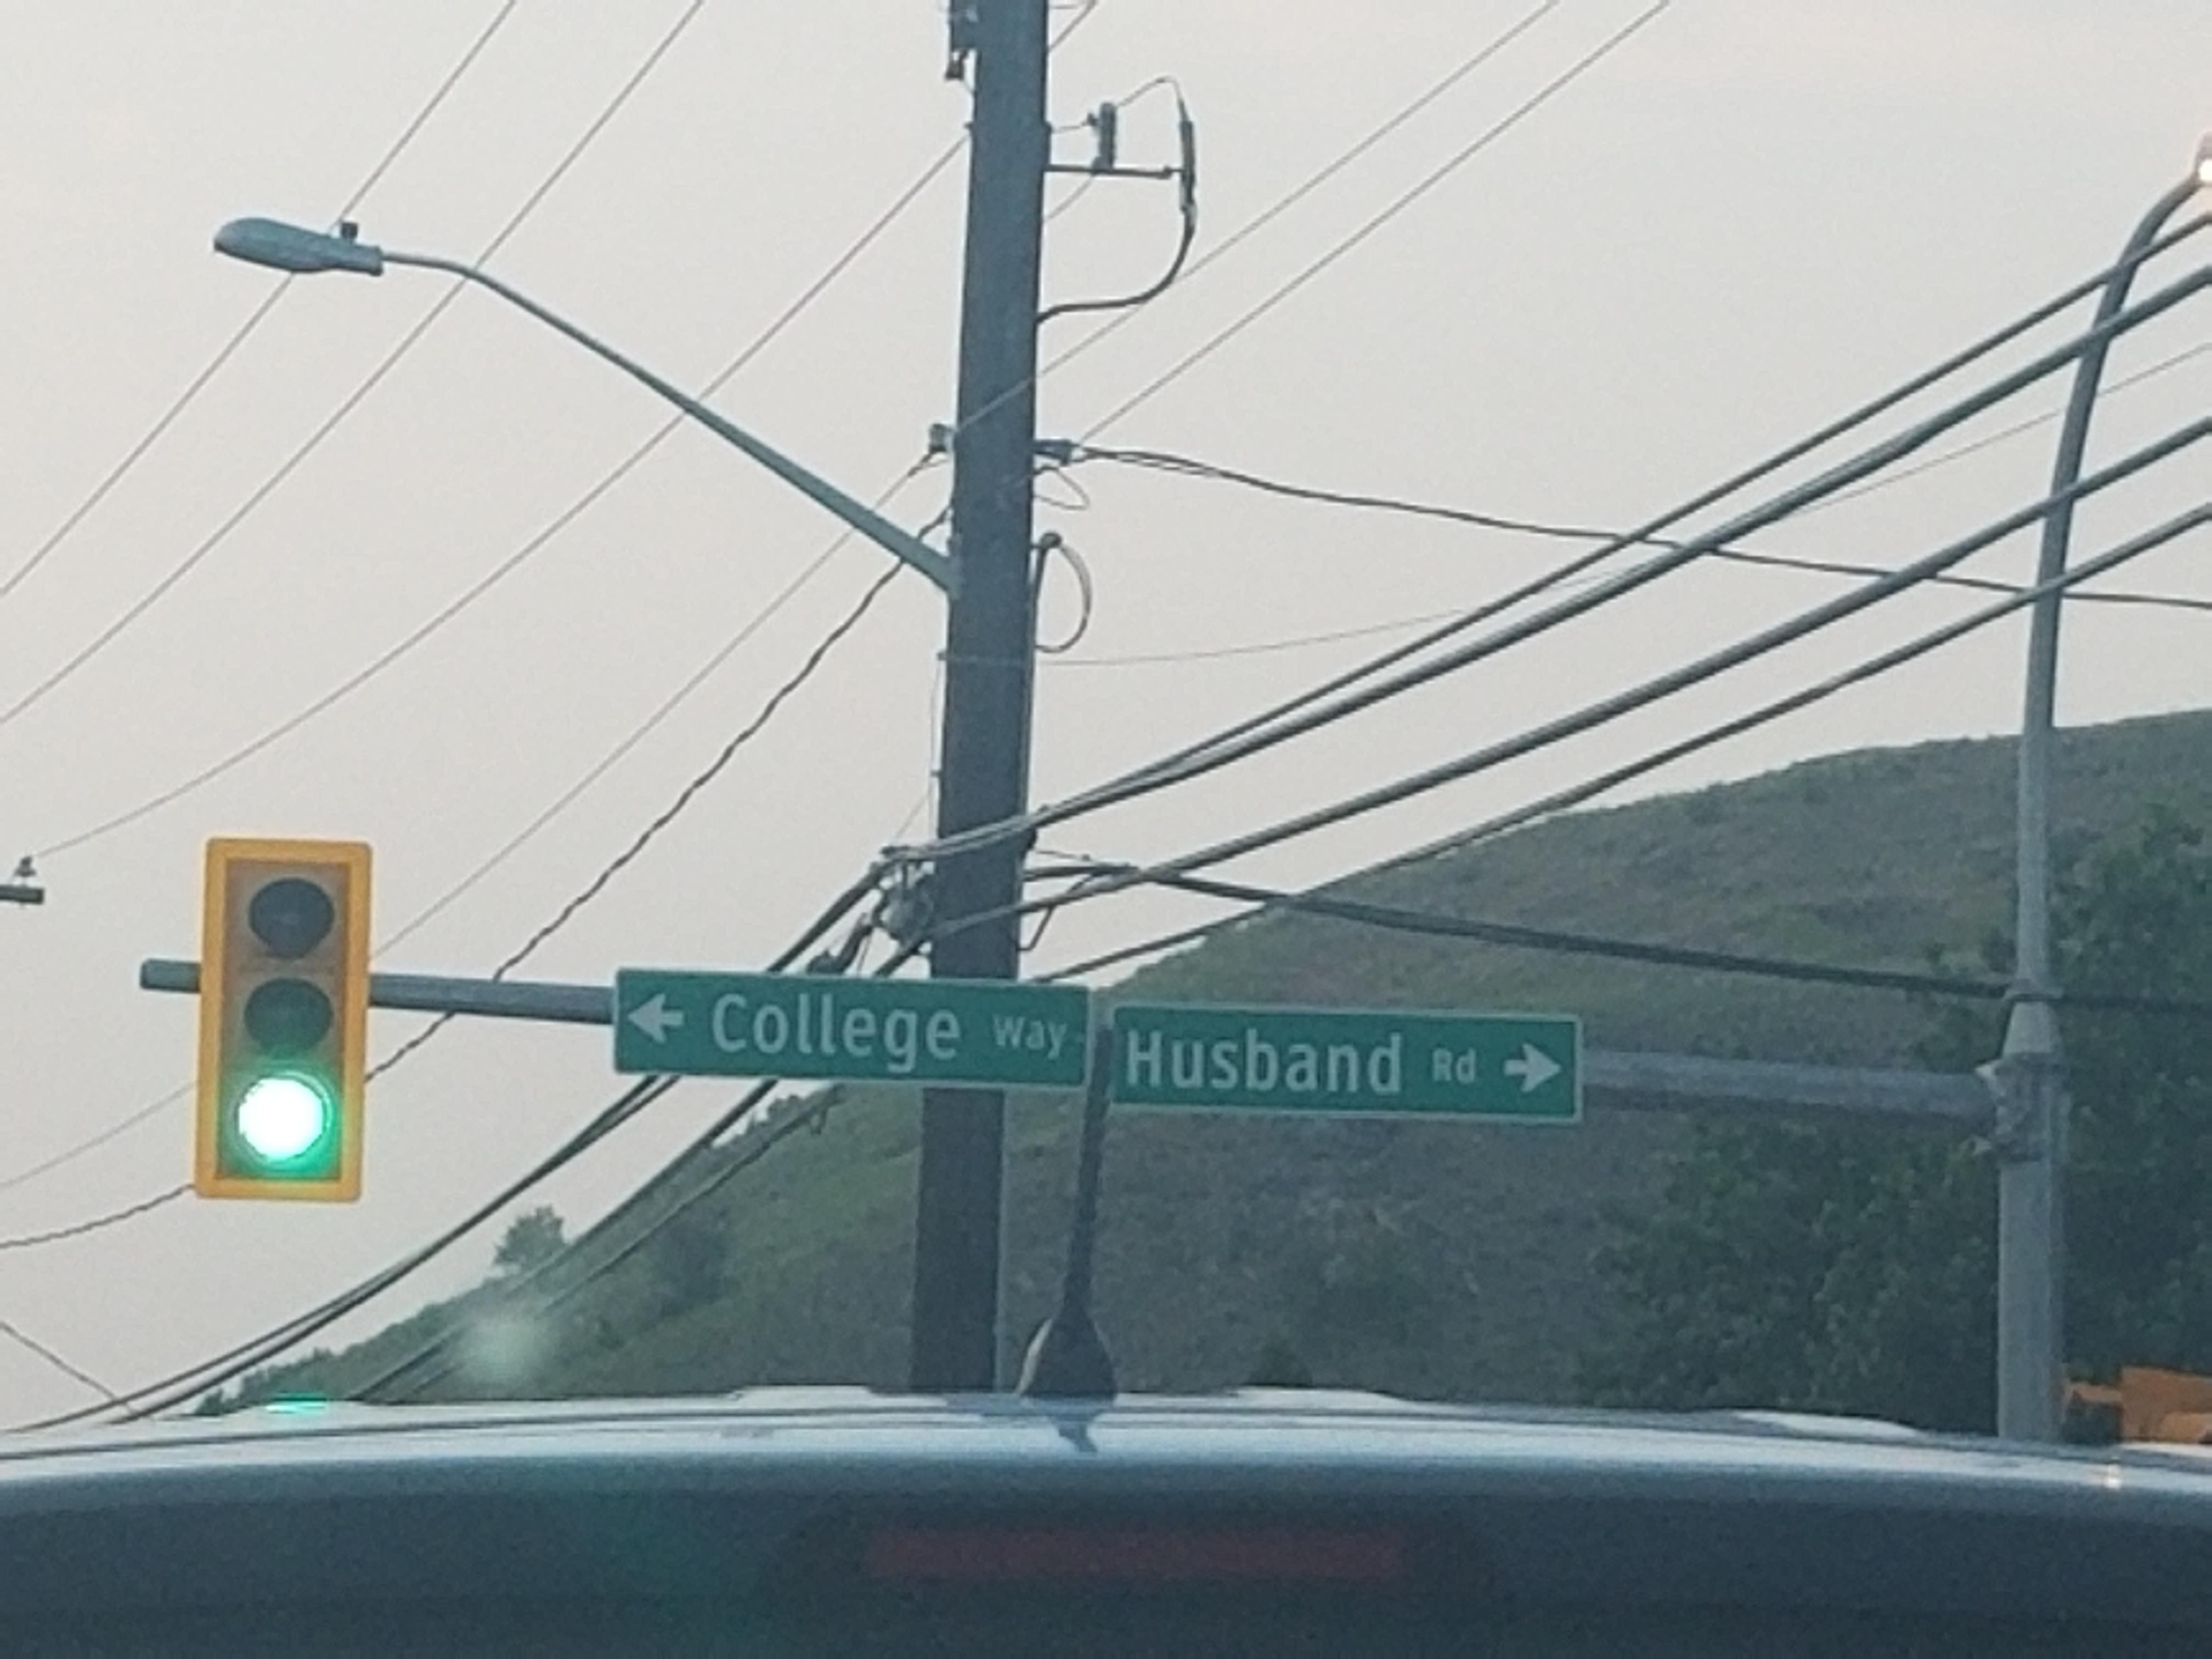 This intersection seems a little old-fashioned.